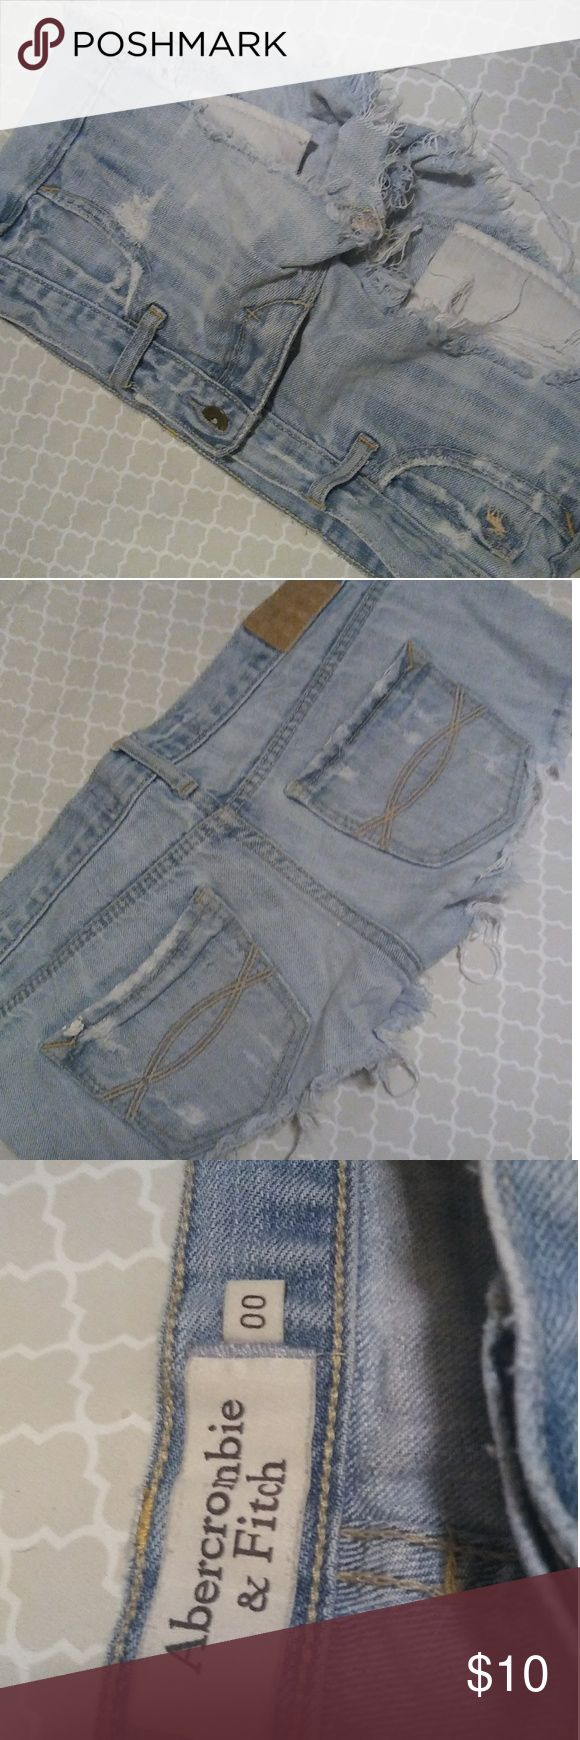 Abercrombie and Fitch Booty Shorts Distressed shorts Abercrombie & Fitch Shorts Jean Shorts